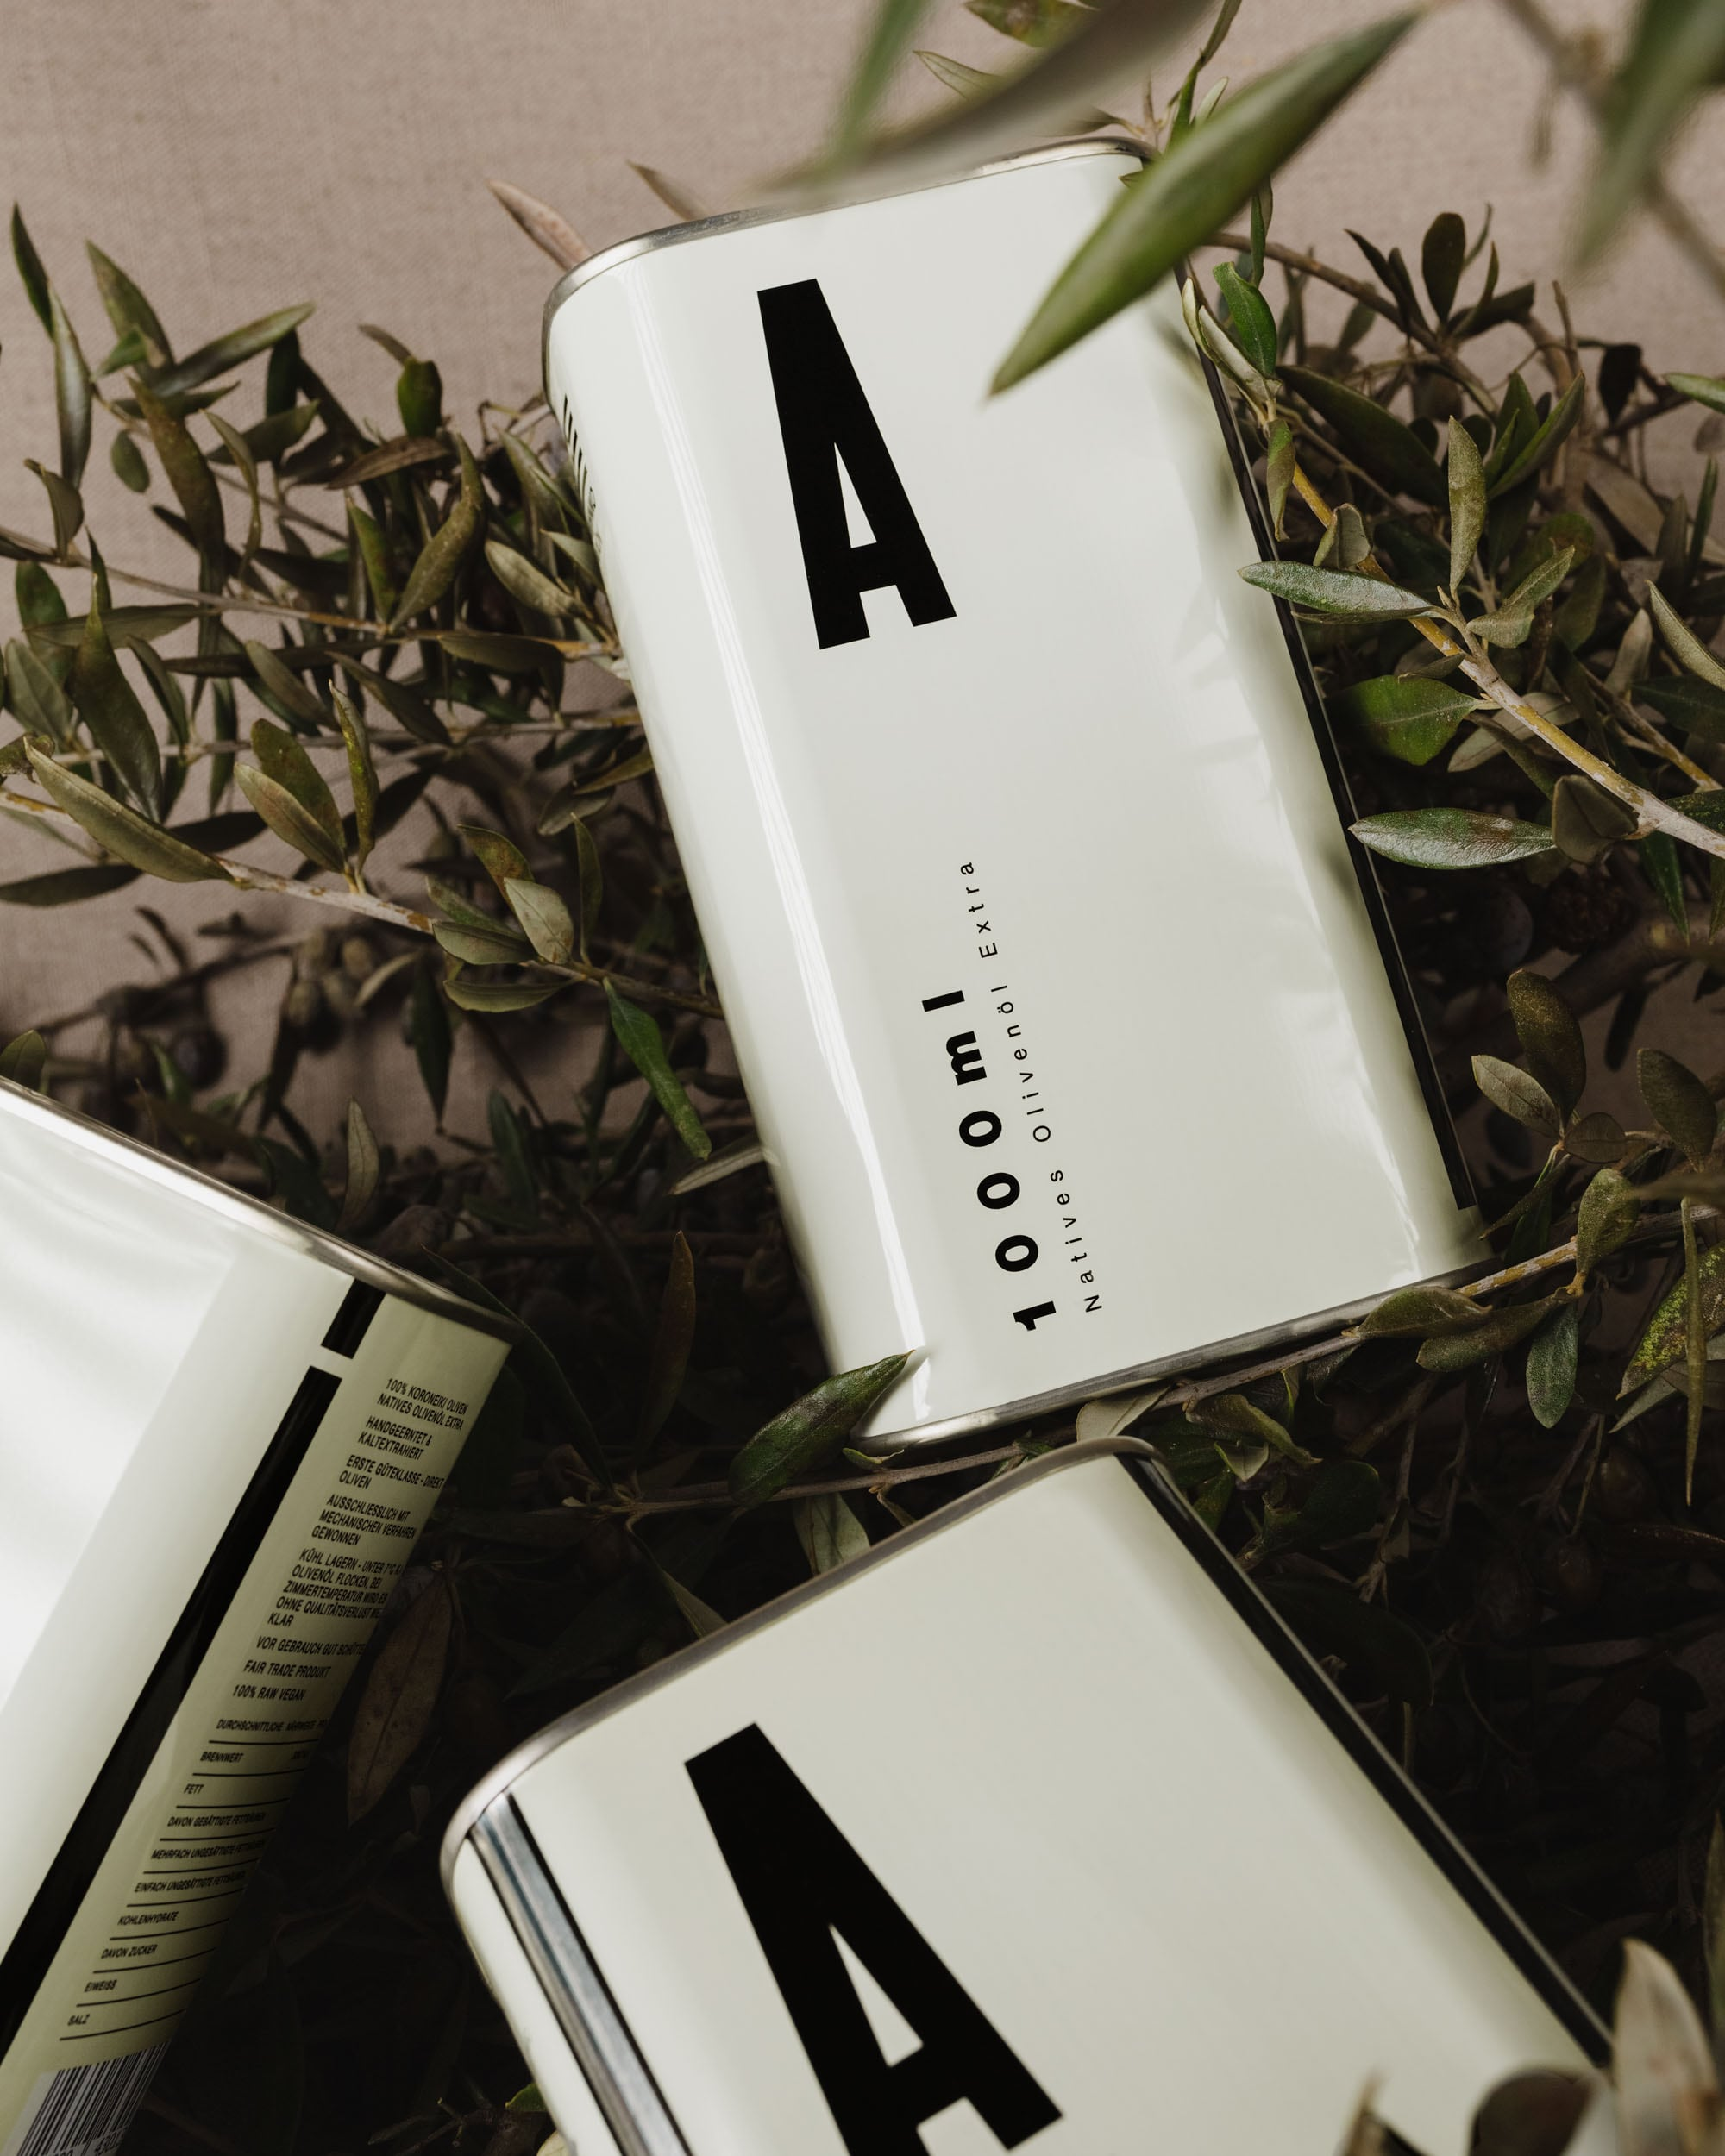 Three 1000ml A! canisters on a bed of olive branches.